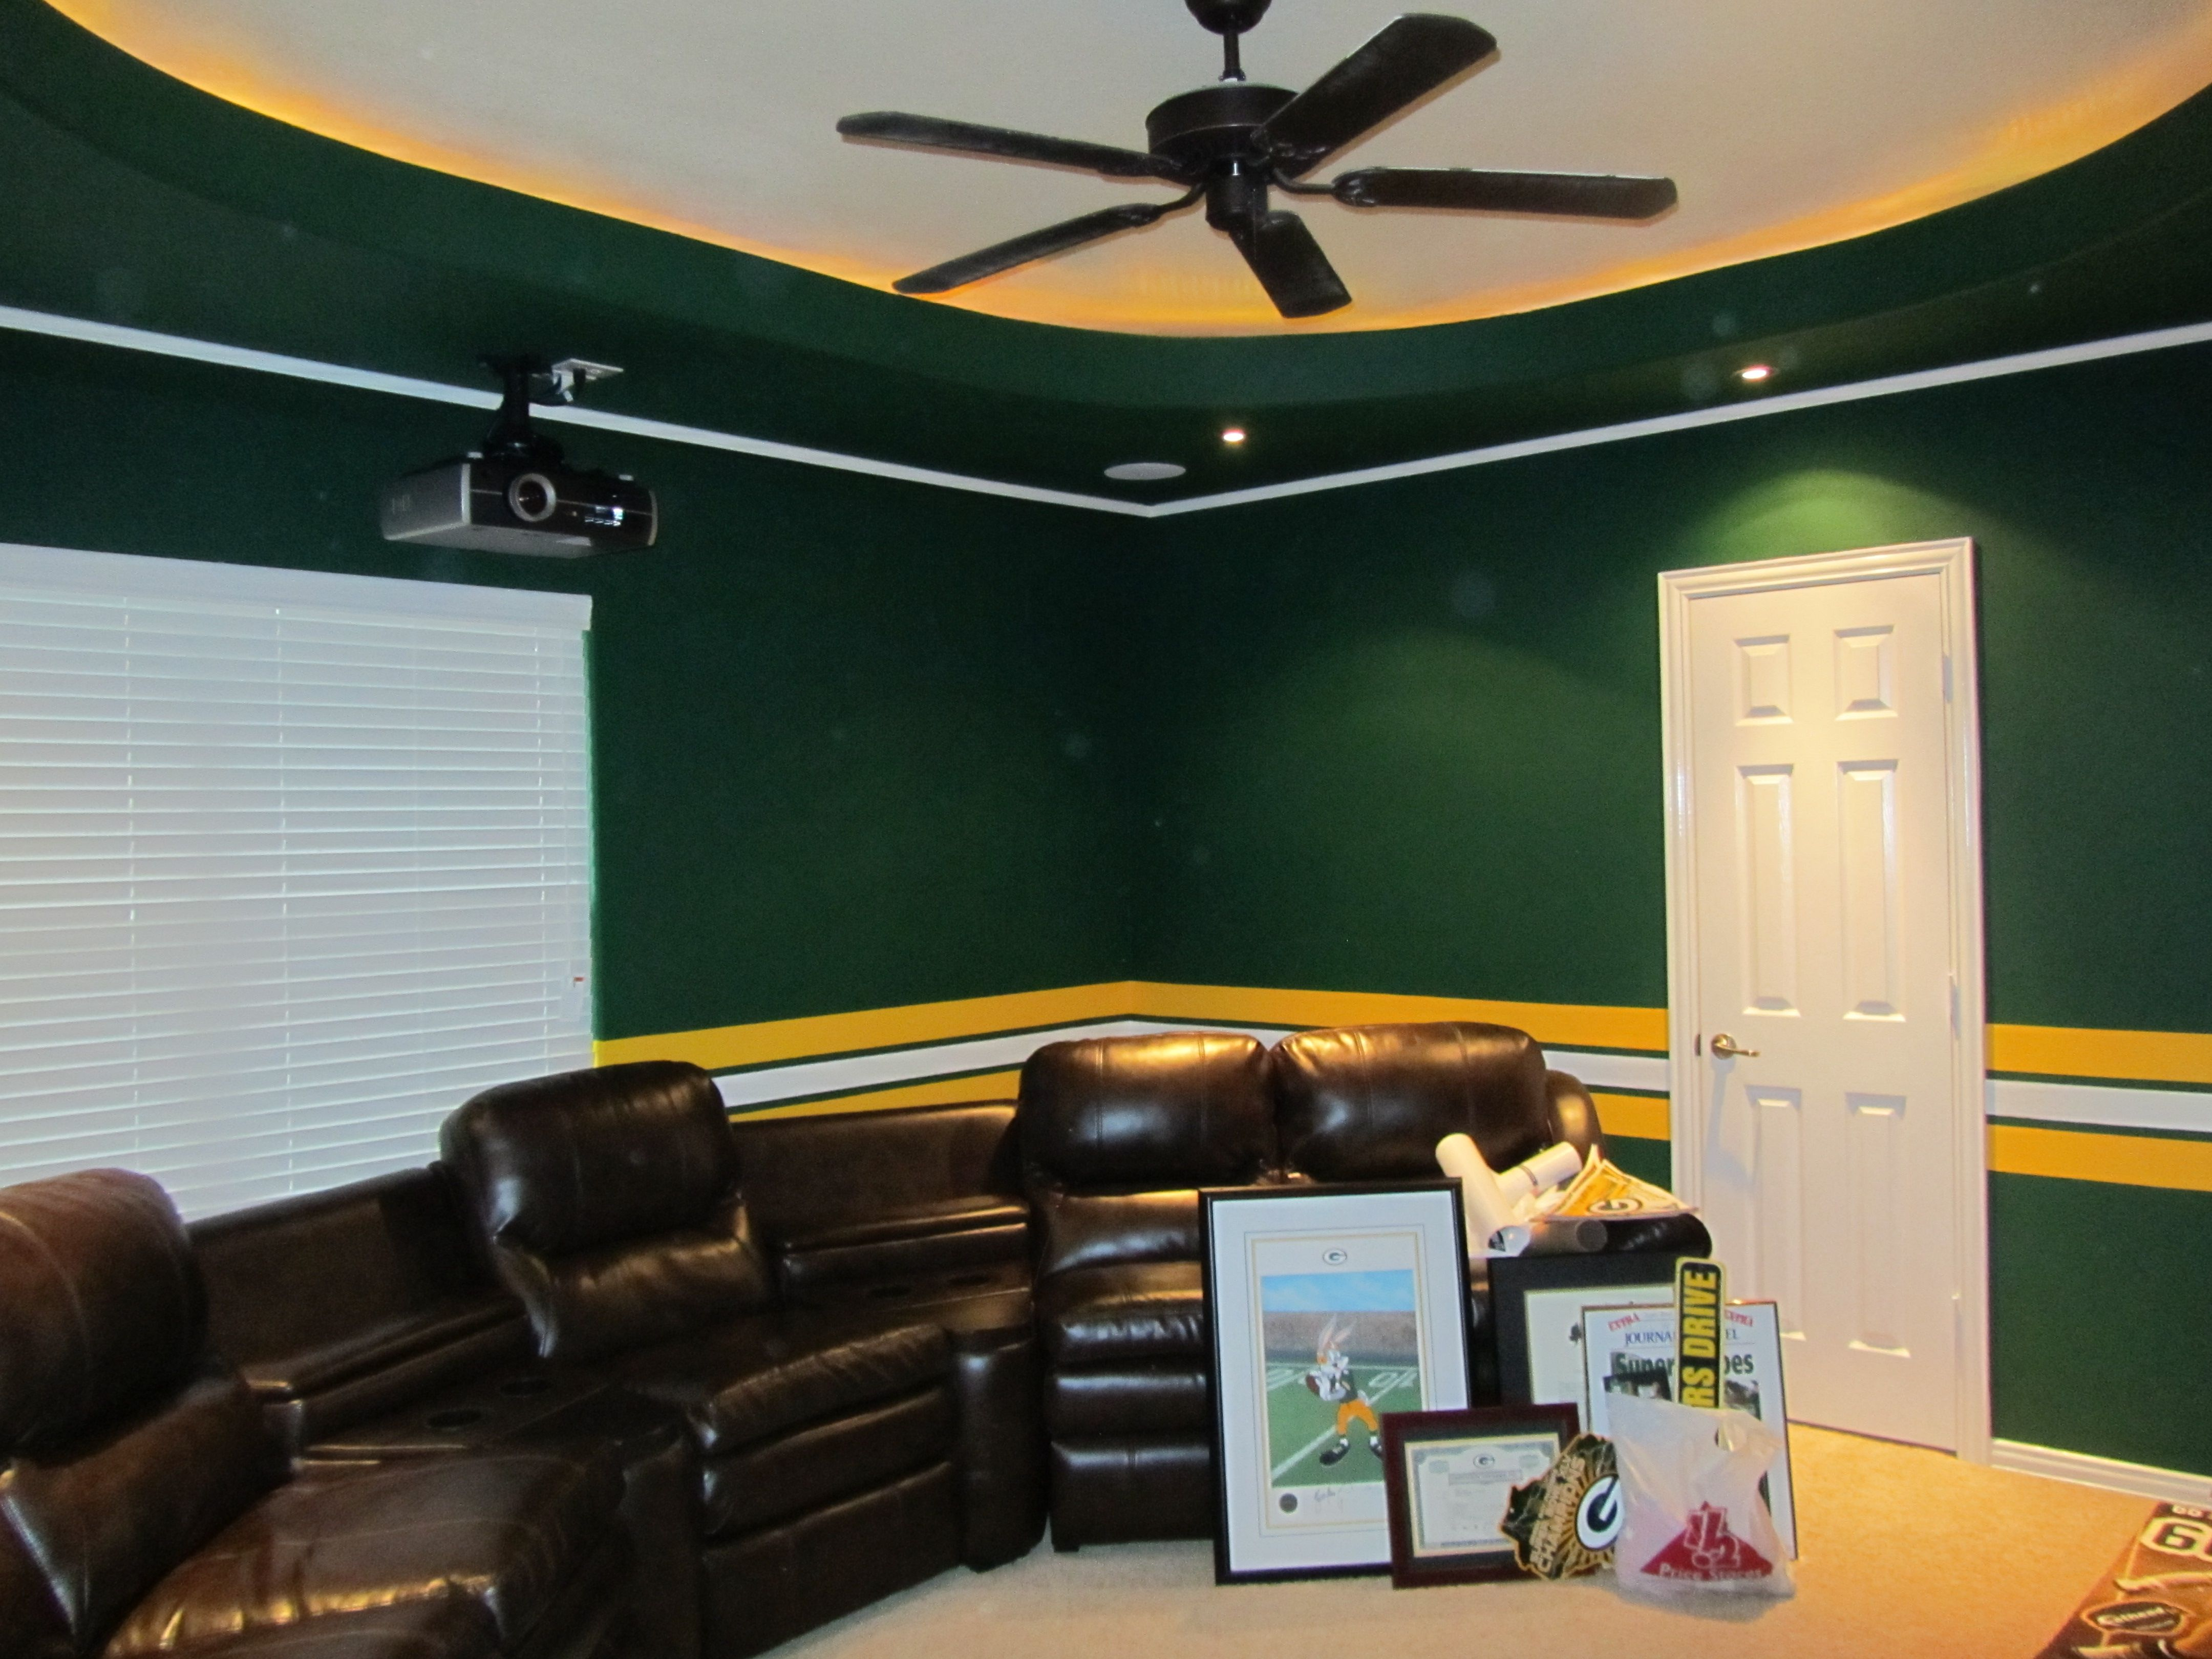 Slider S Green Bay Packer Mancave Green Bay Packers Man Cave Green Bay Packers Room Green Bay